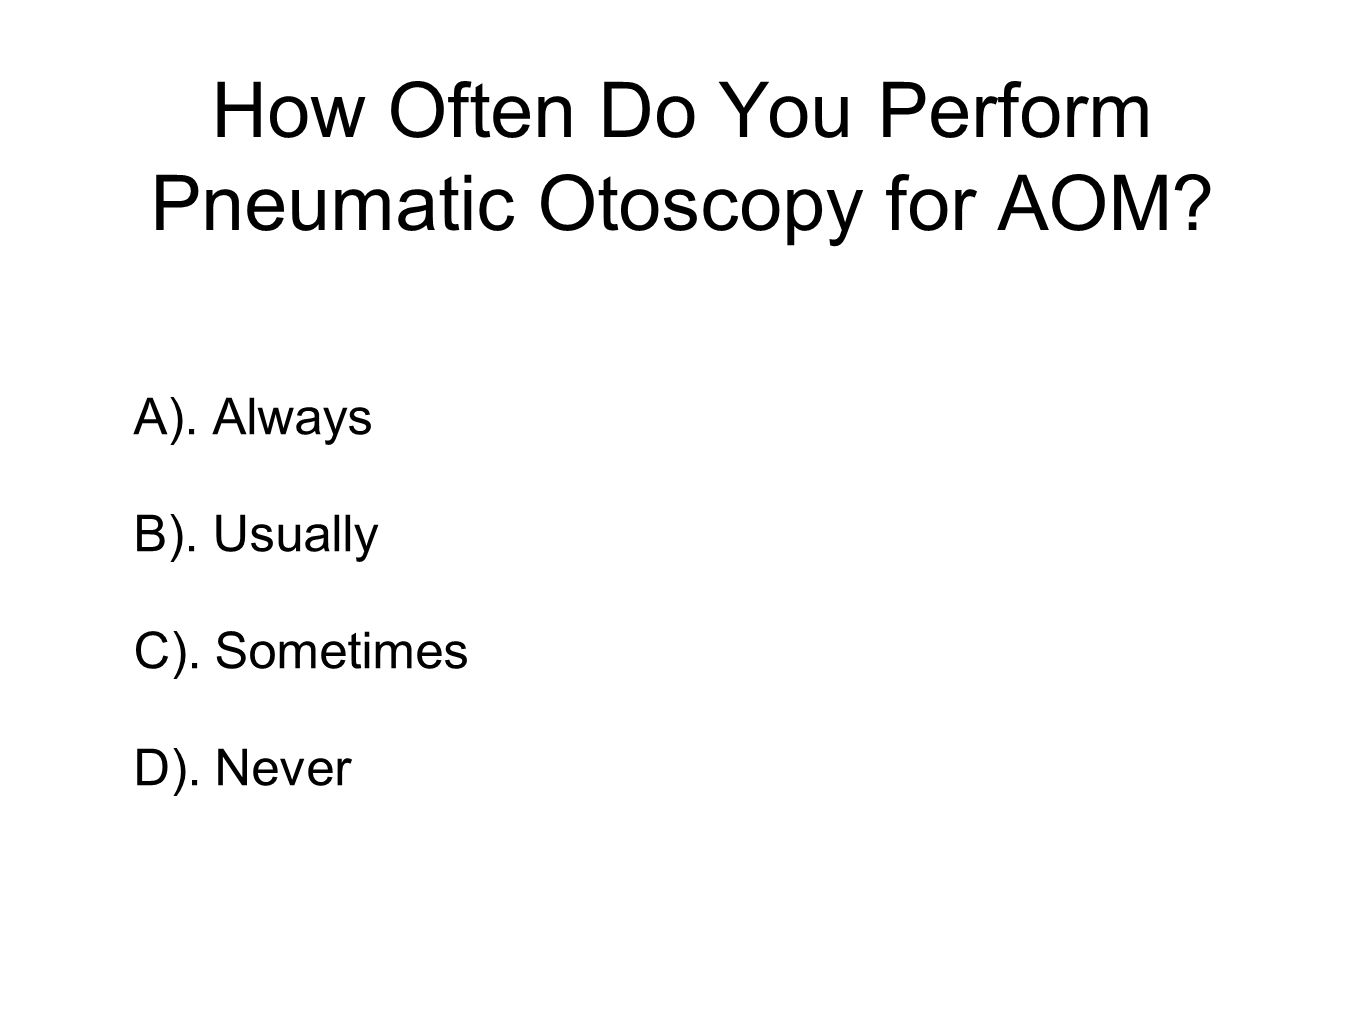 How Often Do You Perform Pneumatic Otoscopy for AOM